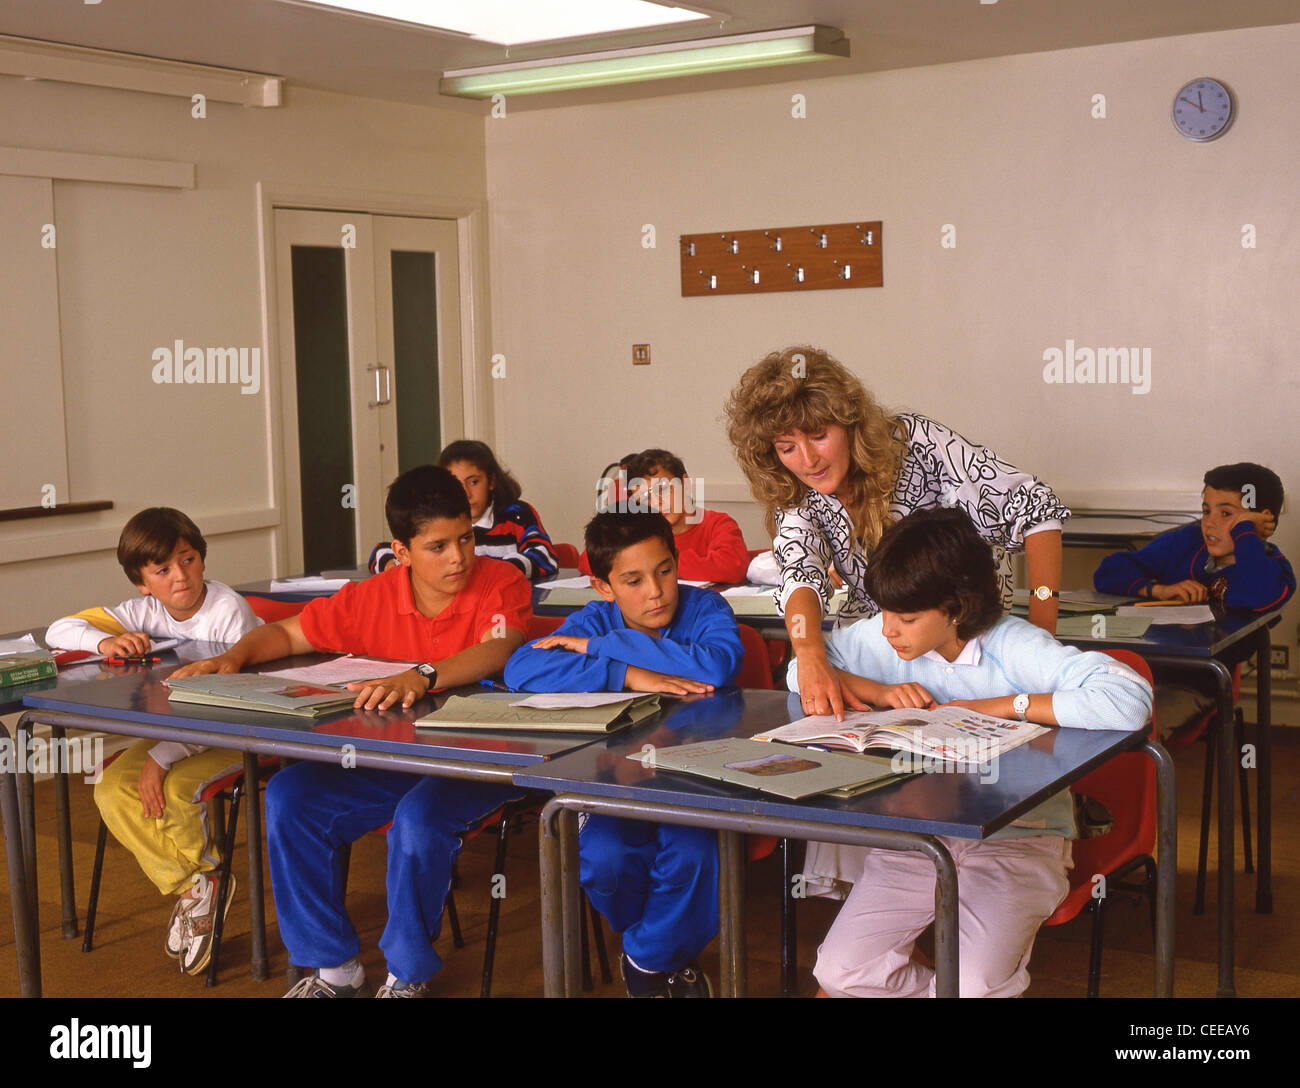 Primary school class with teacher, Surrey, England, United Kingdom - Stock Image